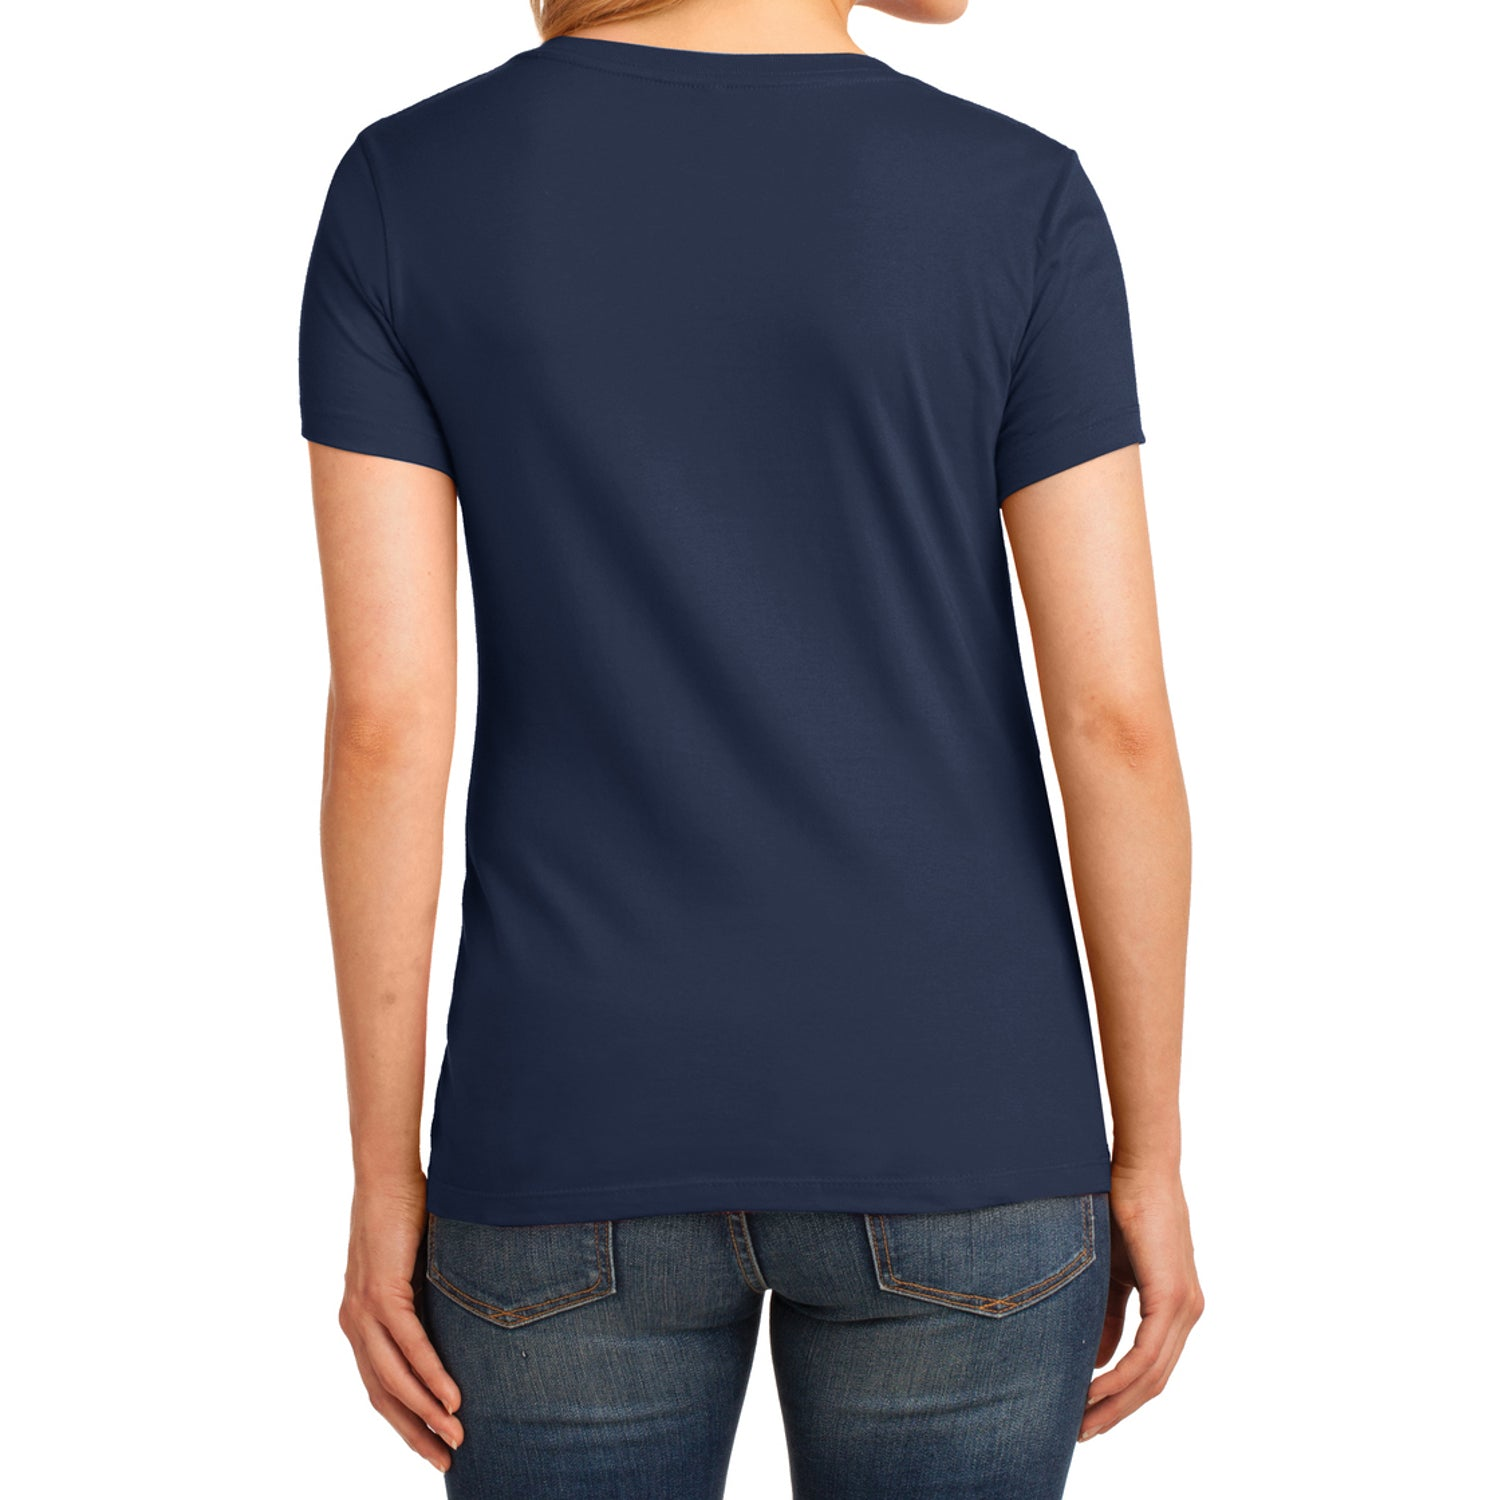 Women's Core Cotton V-Neck Tee Navy - Back